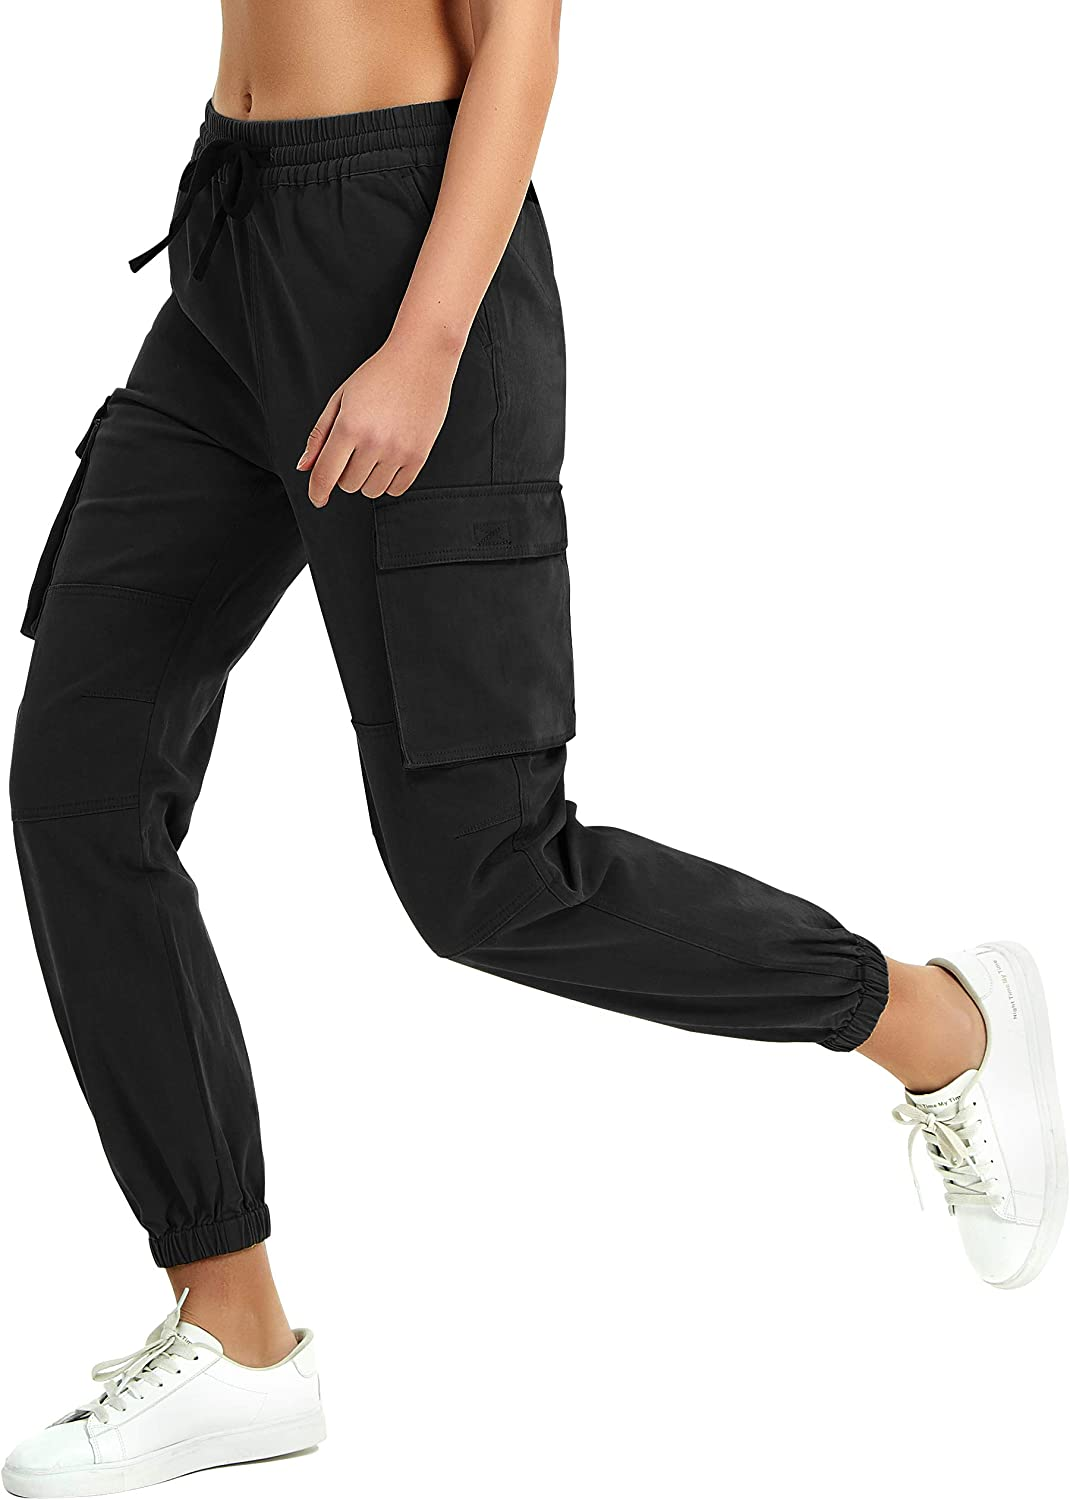 SPECIALMAGIC Cargo Pants for Women Trousers Colorado Springs Mall with Casual Outdoor 40% OFF Cheap Sale